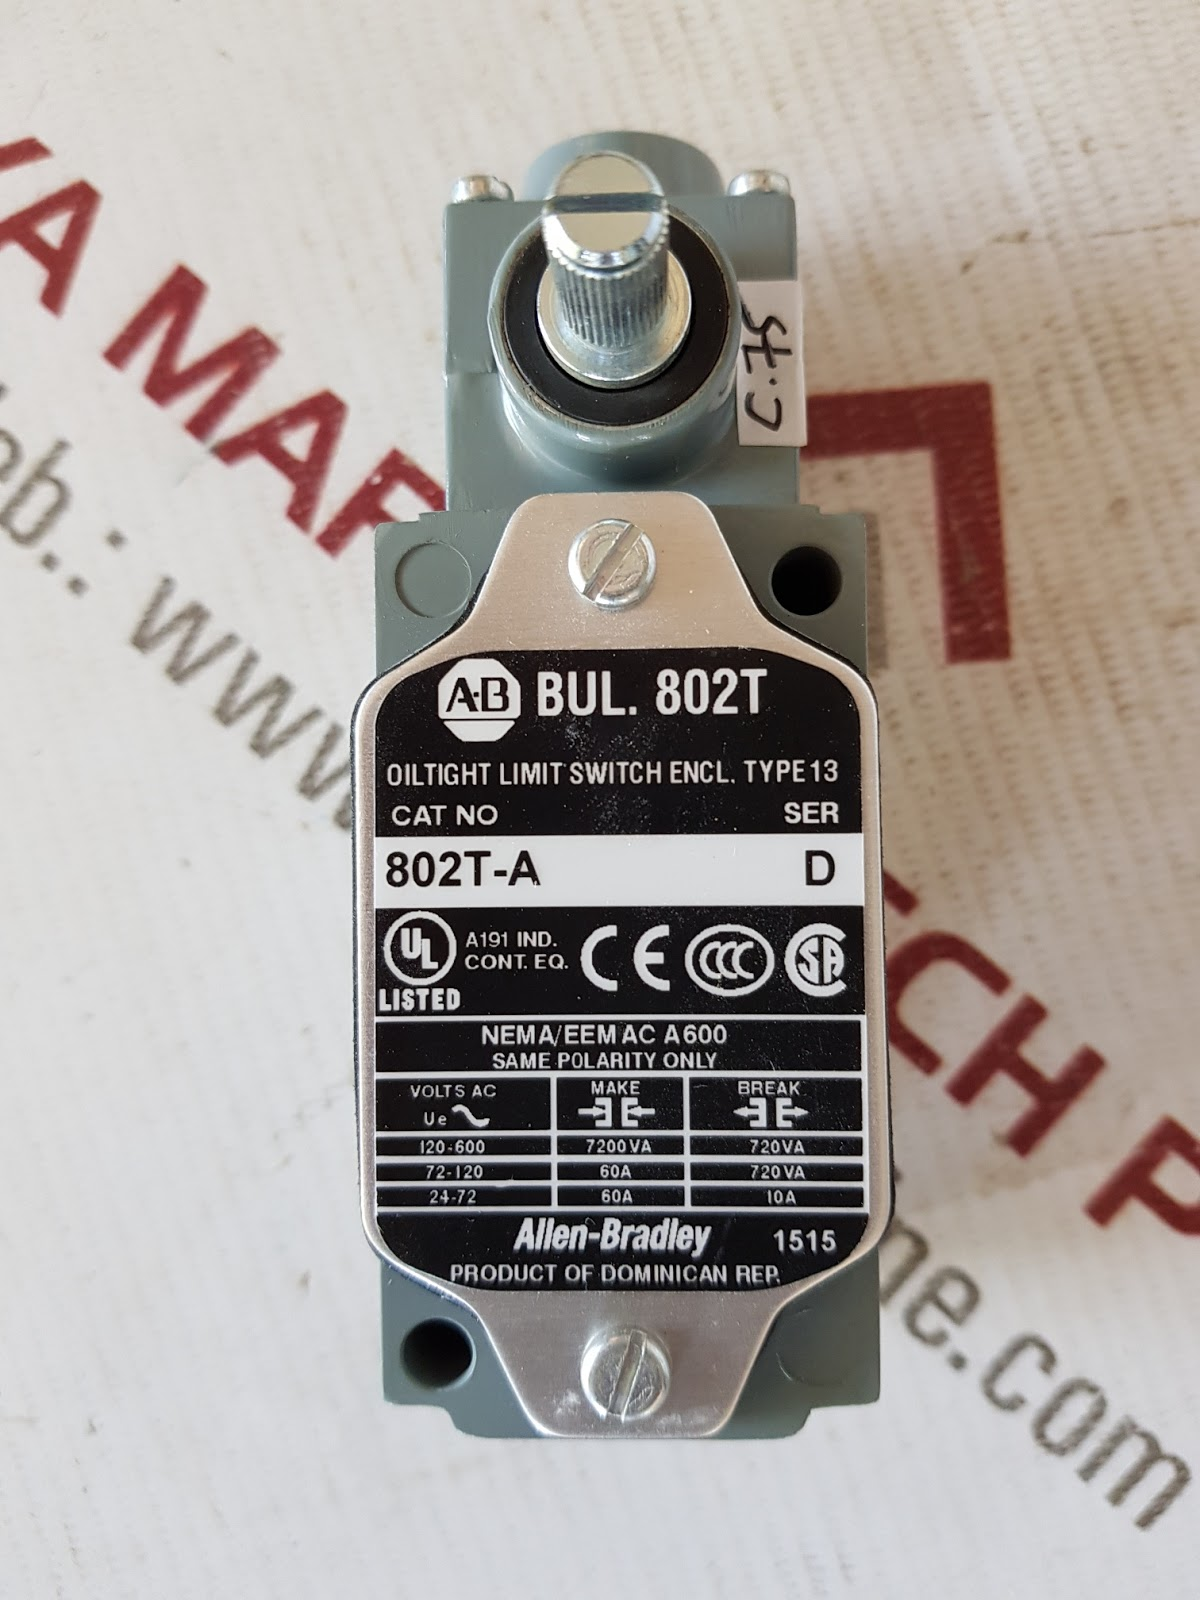 small resolution of a b bul 802t limit switch with operator and roller arm type 13 802t a nema eem ac a 600 a191 a173a 1515 acct 7254000 condition new 1 pcs